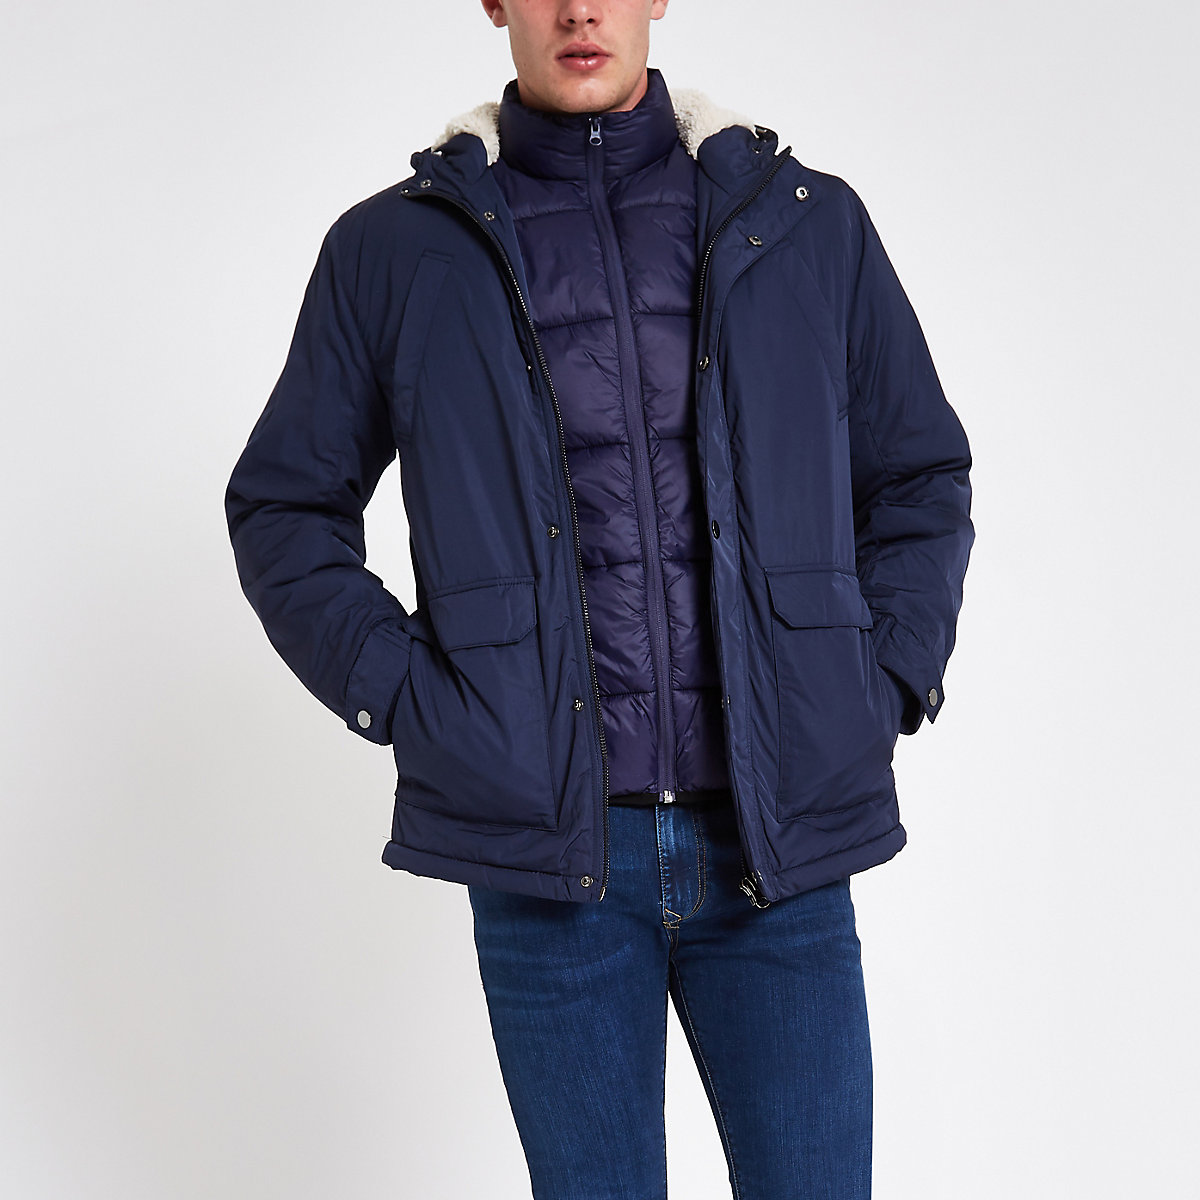 Navy hooded borg lined jacket